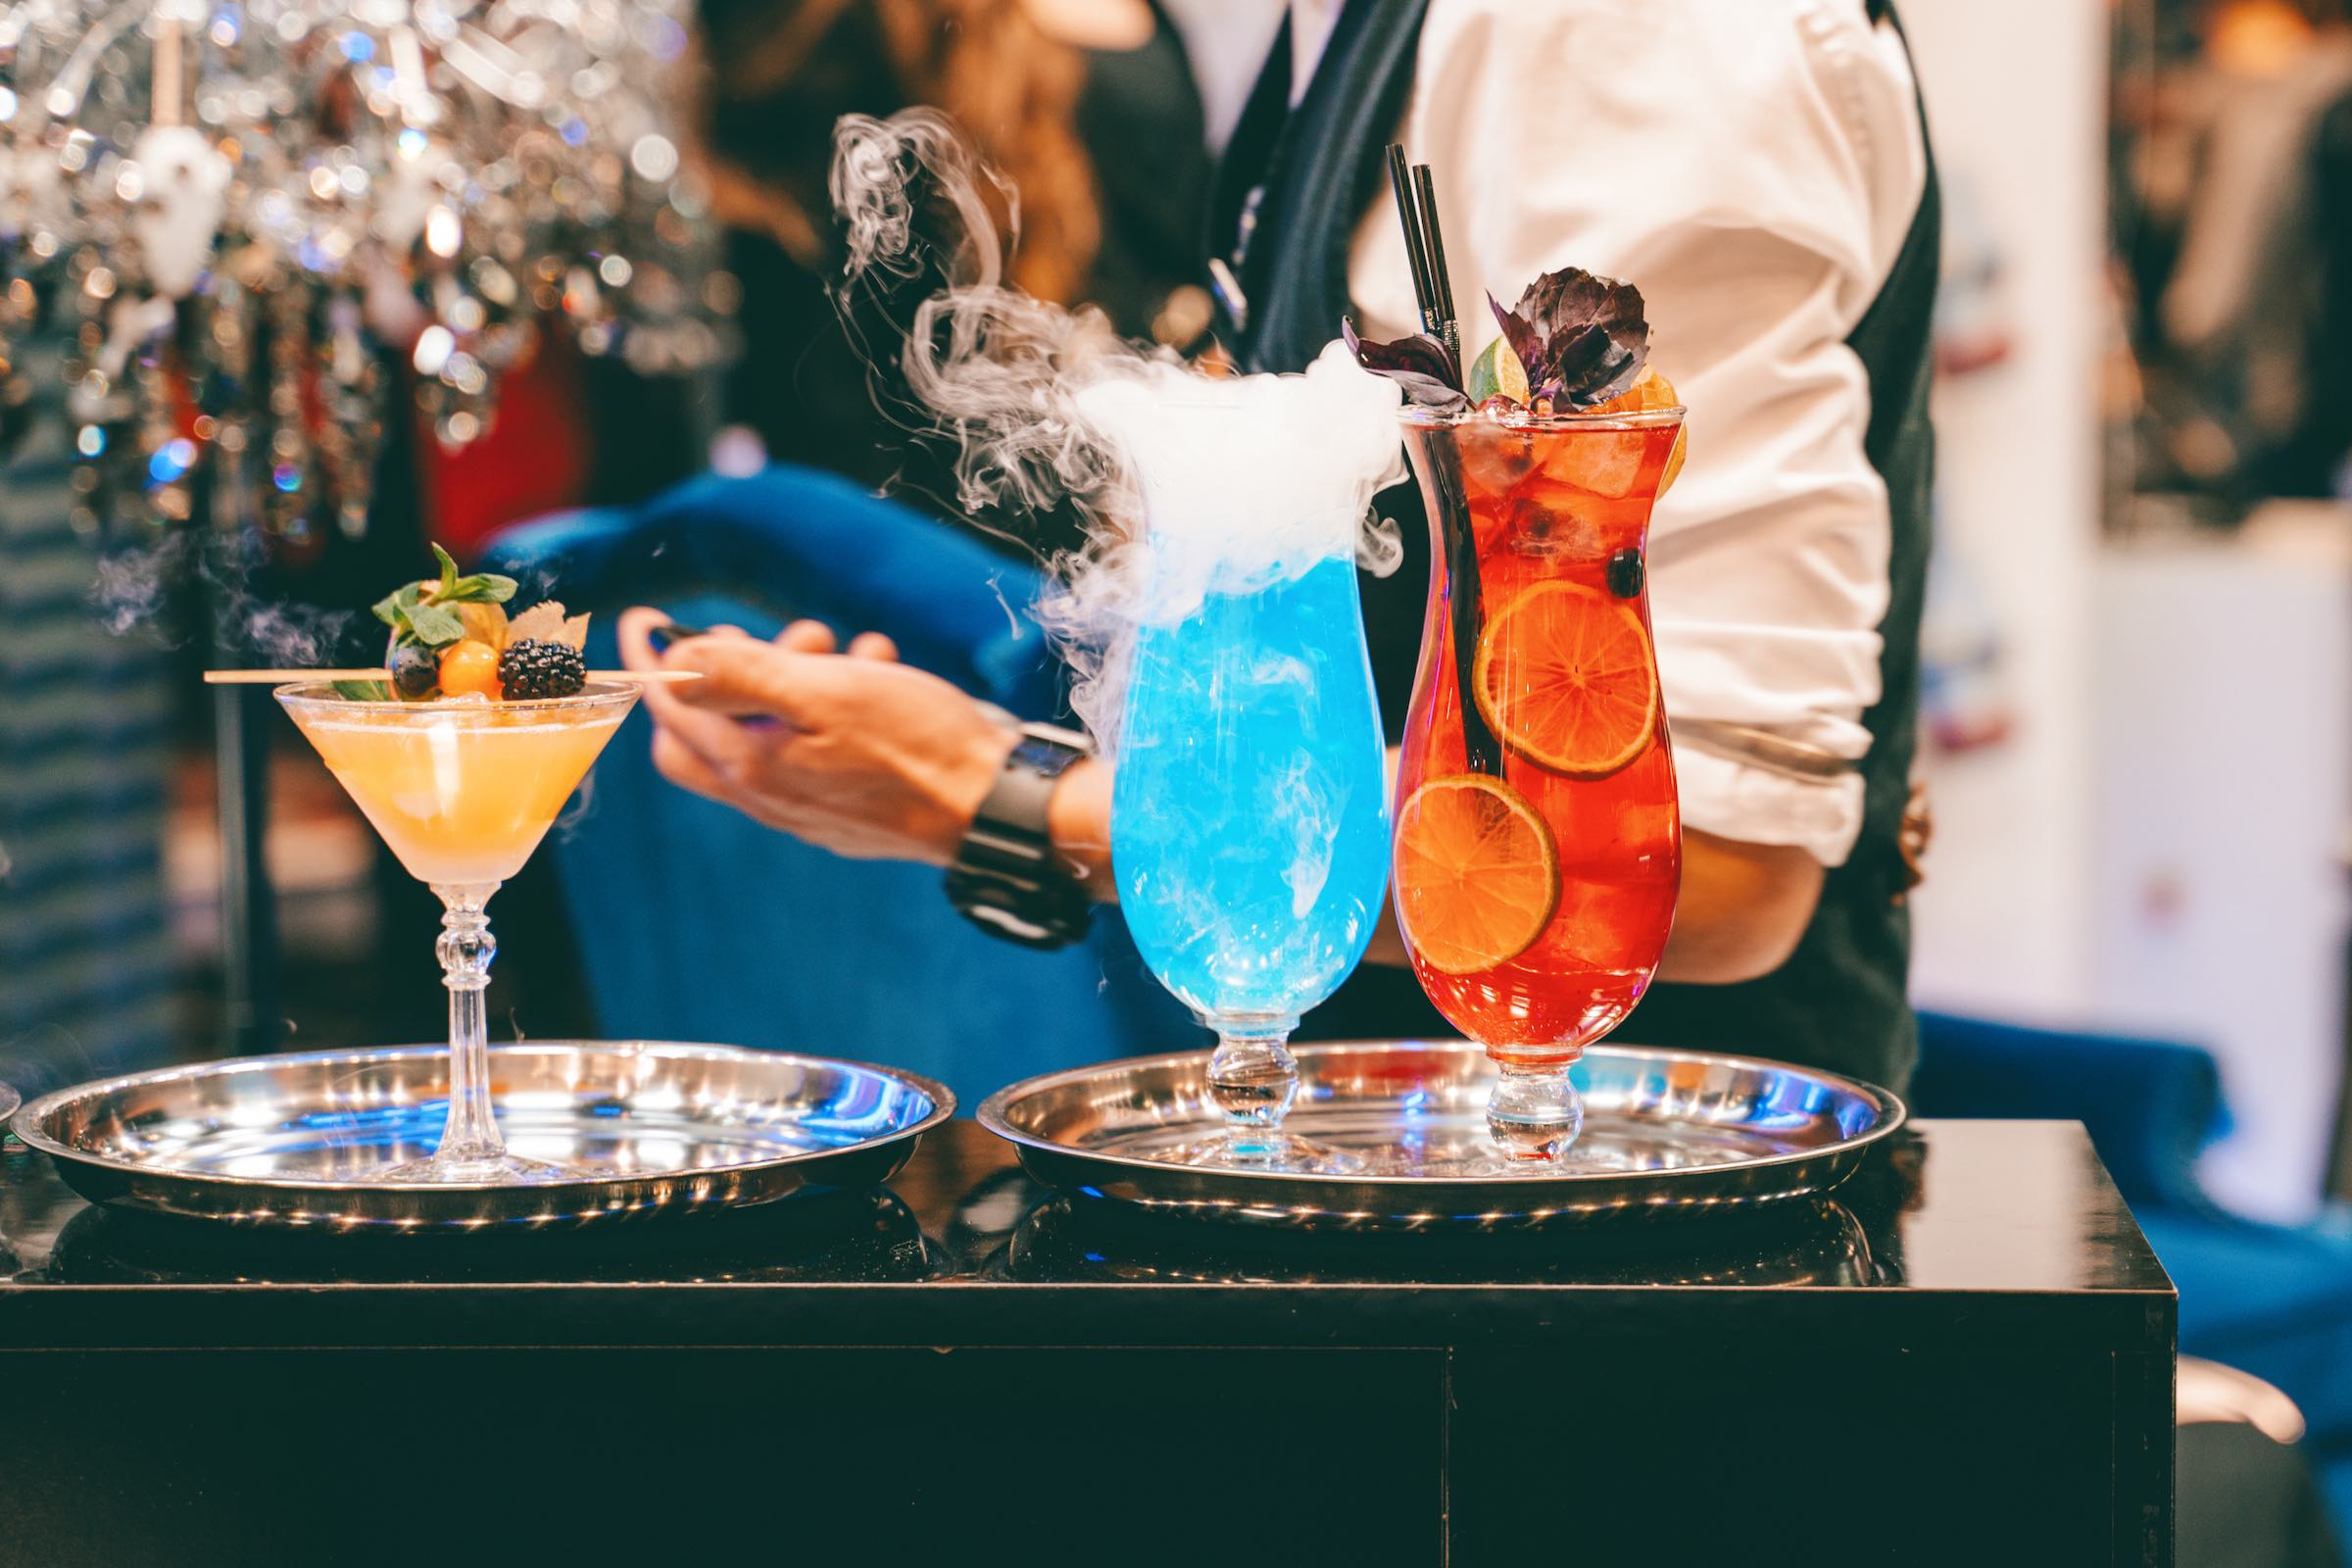 Barformat Hannover - Mobile Bar | Foodtruck | Catering | Eventcatering | Cocktails | Wein | Festival | Event | Hochzeit | Fingerfood | Empfang | Drinks